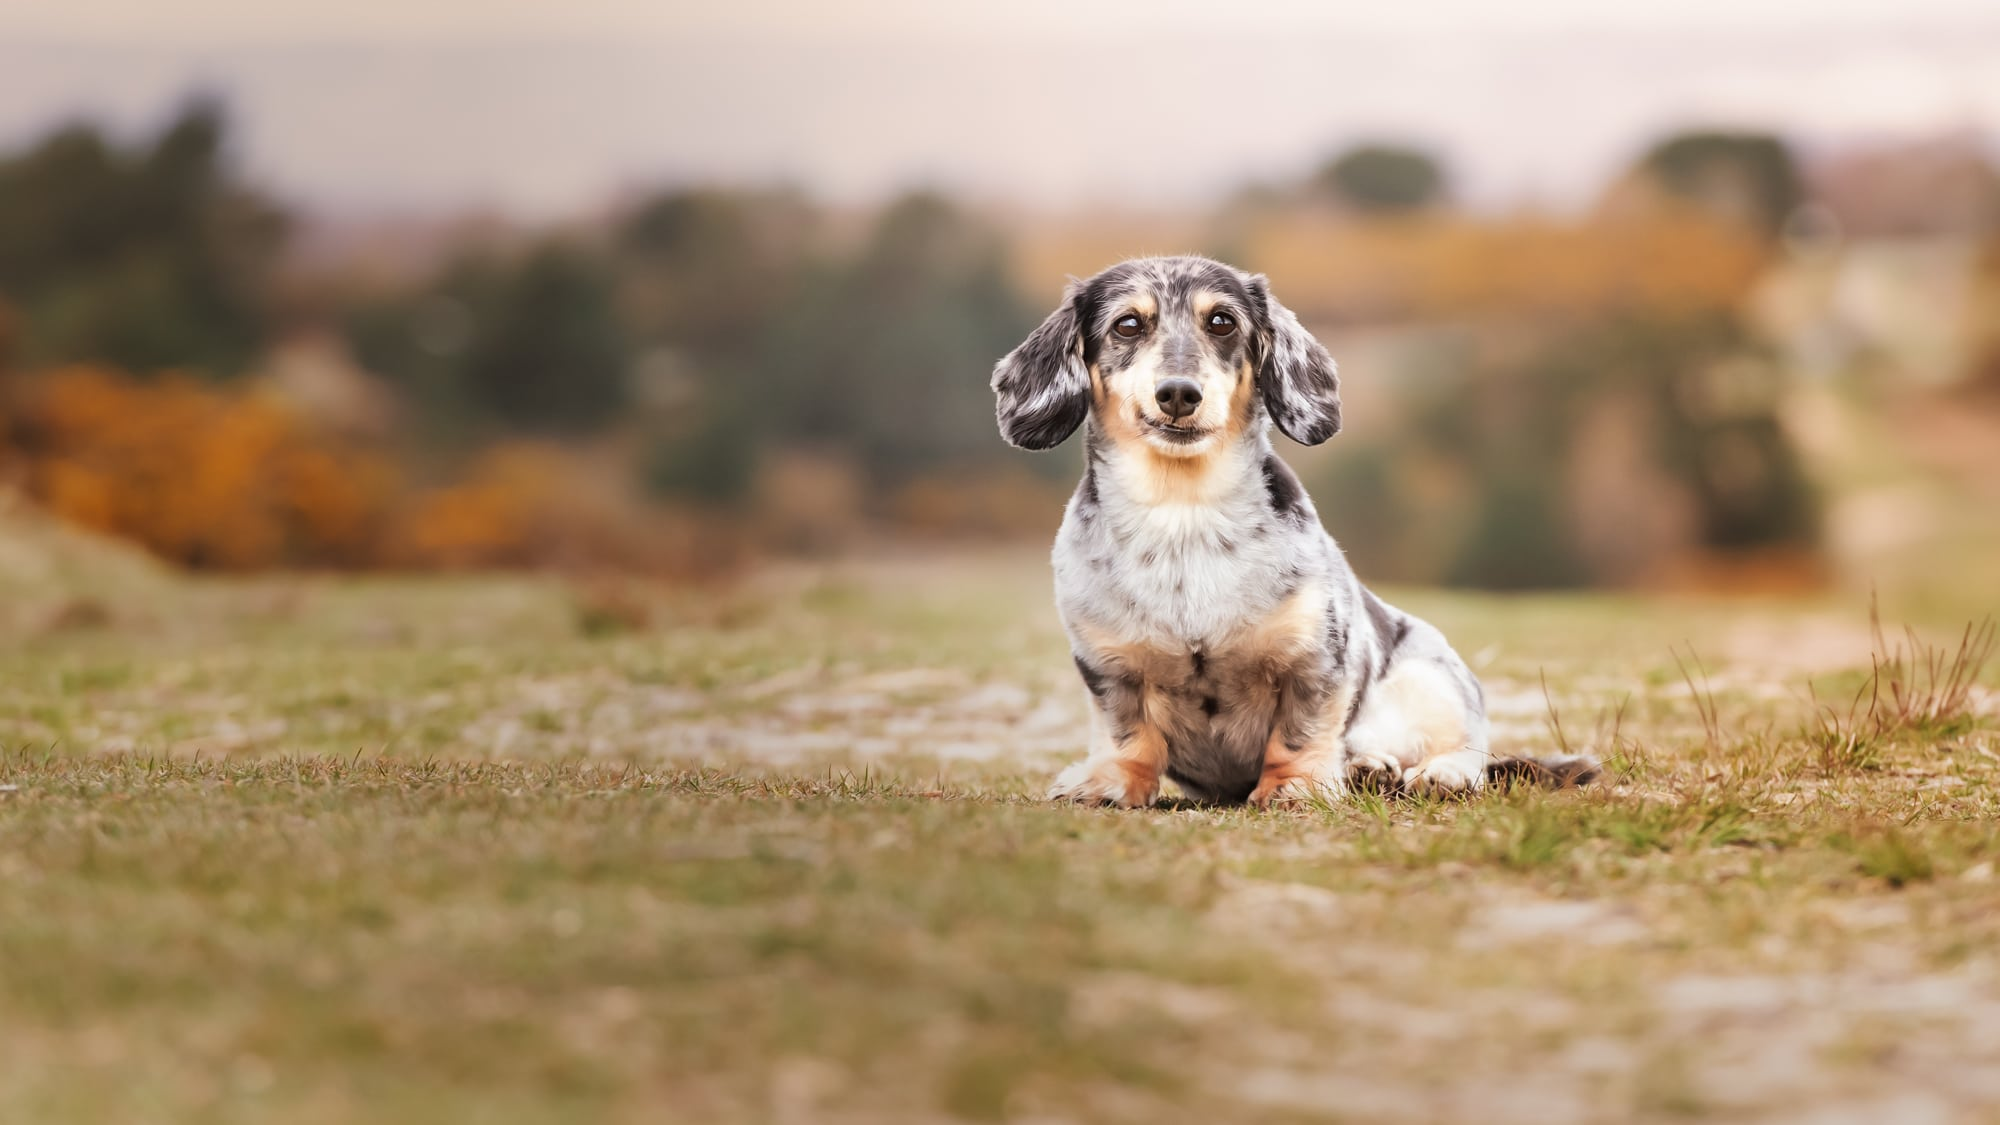 Nic BIsseker photography keeping dogs cool in the sun